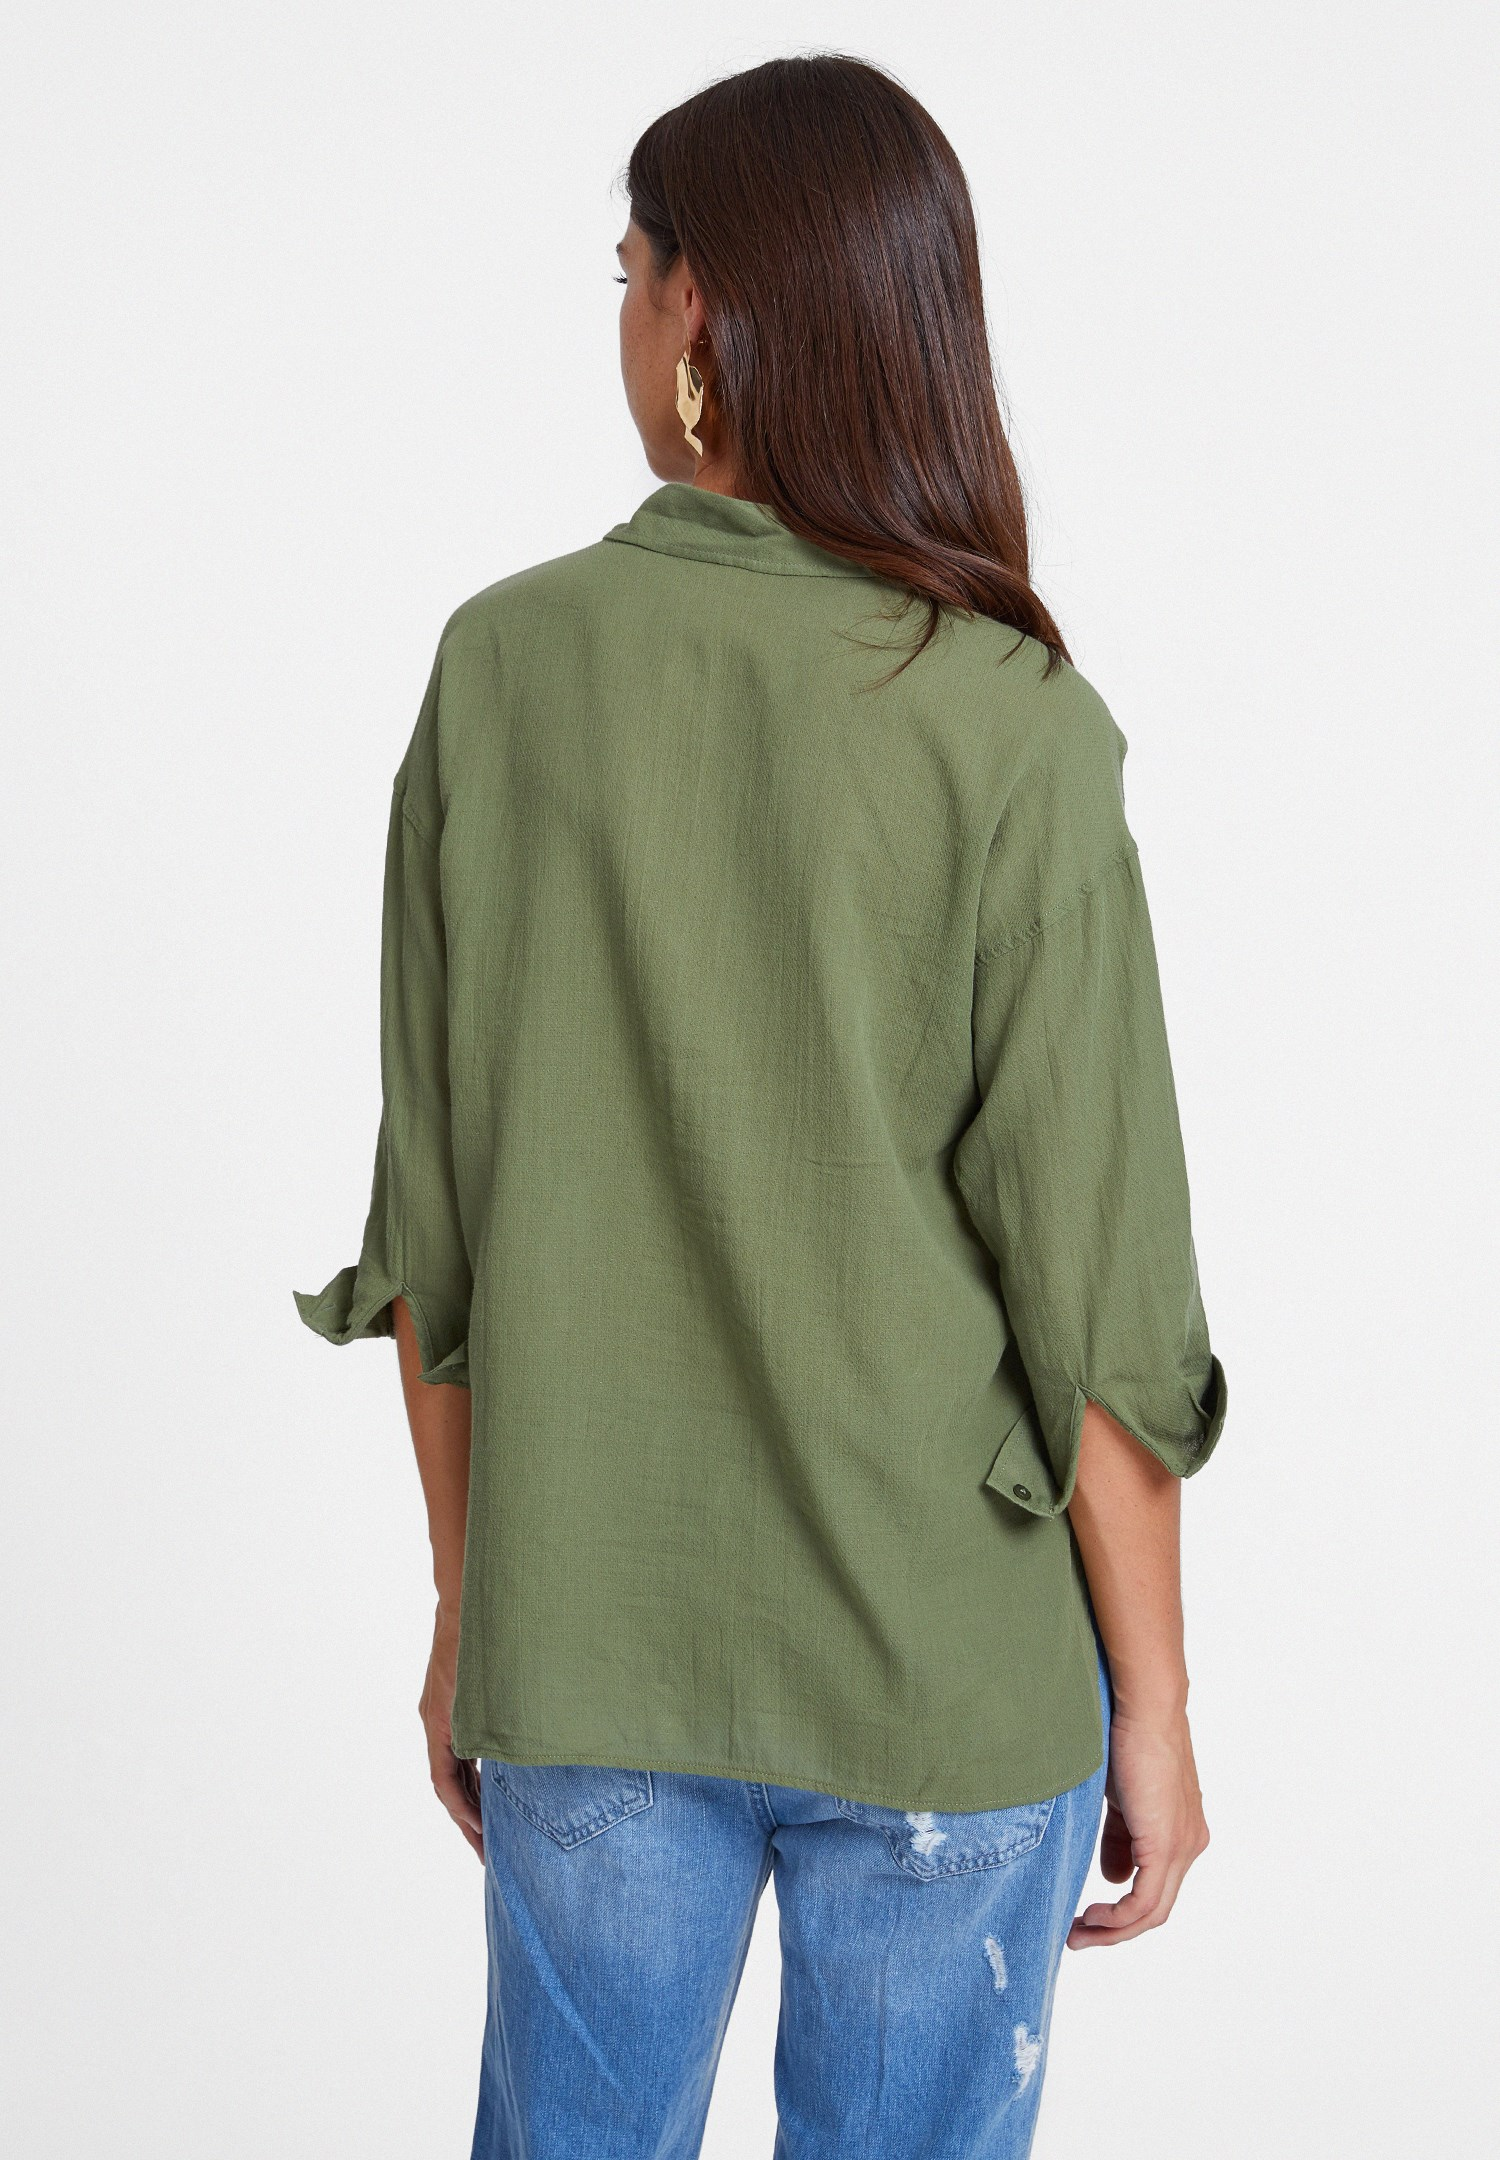 Women Green Cotton Shirt with Pocket